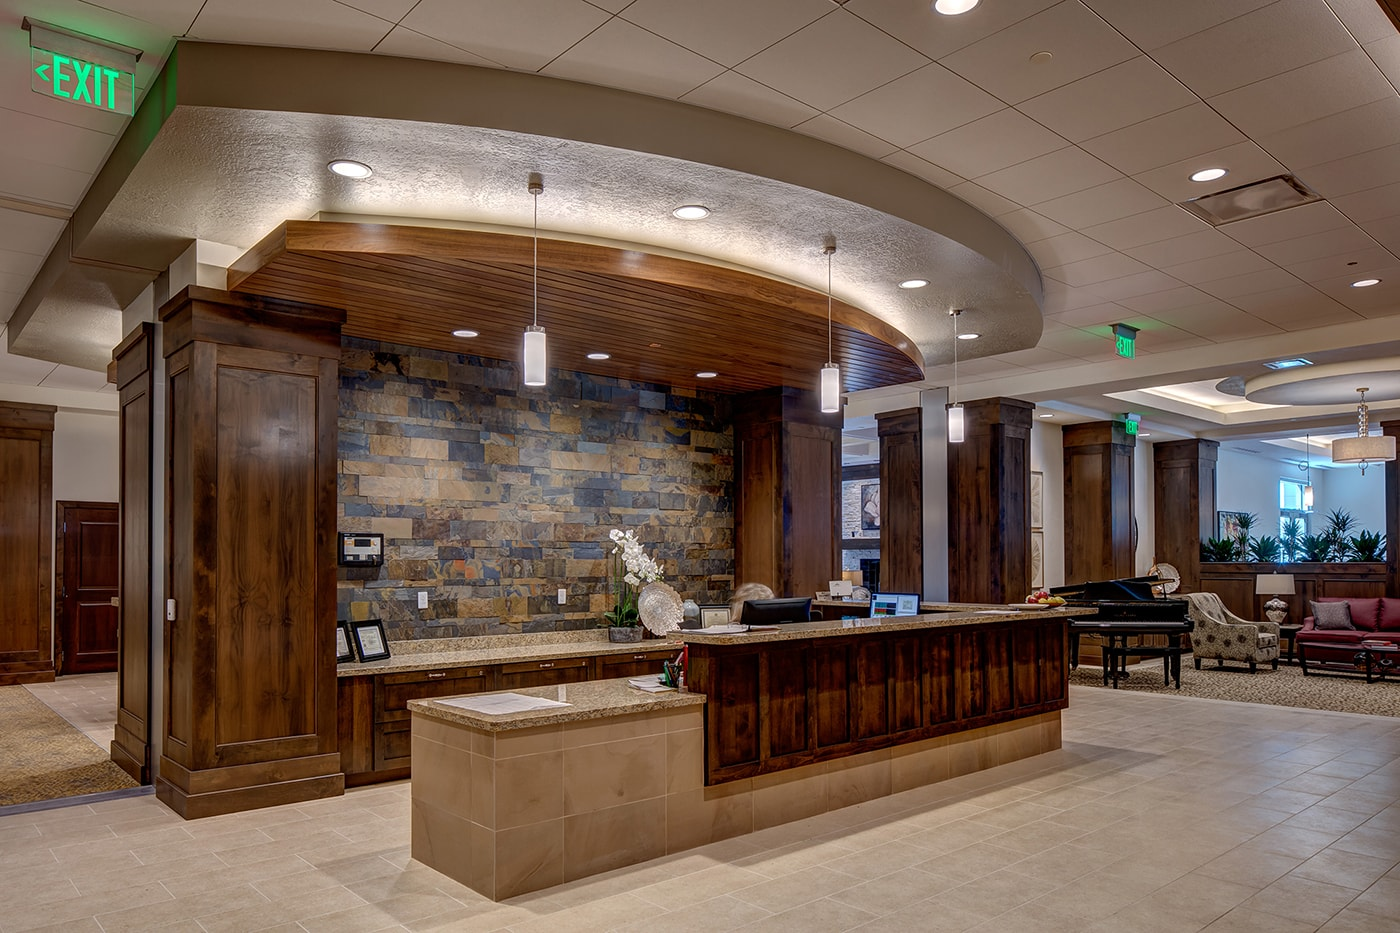 The Sugar House Skyline Has Been Revitalized The Completion Of A New Senior  Living Community Complex. In 2014, Western States Lodging, LLC, Announced  Its ...